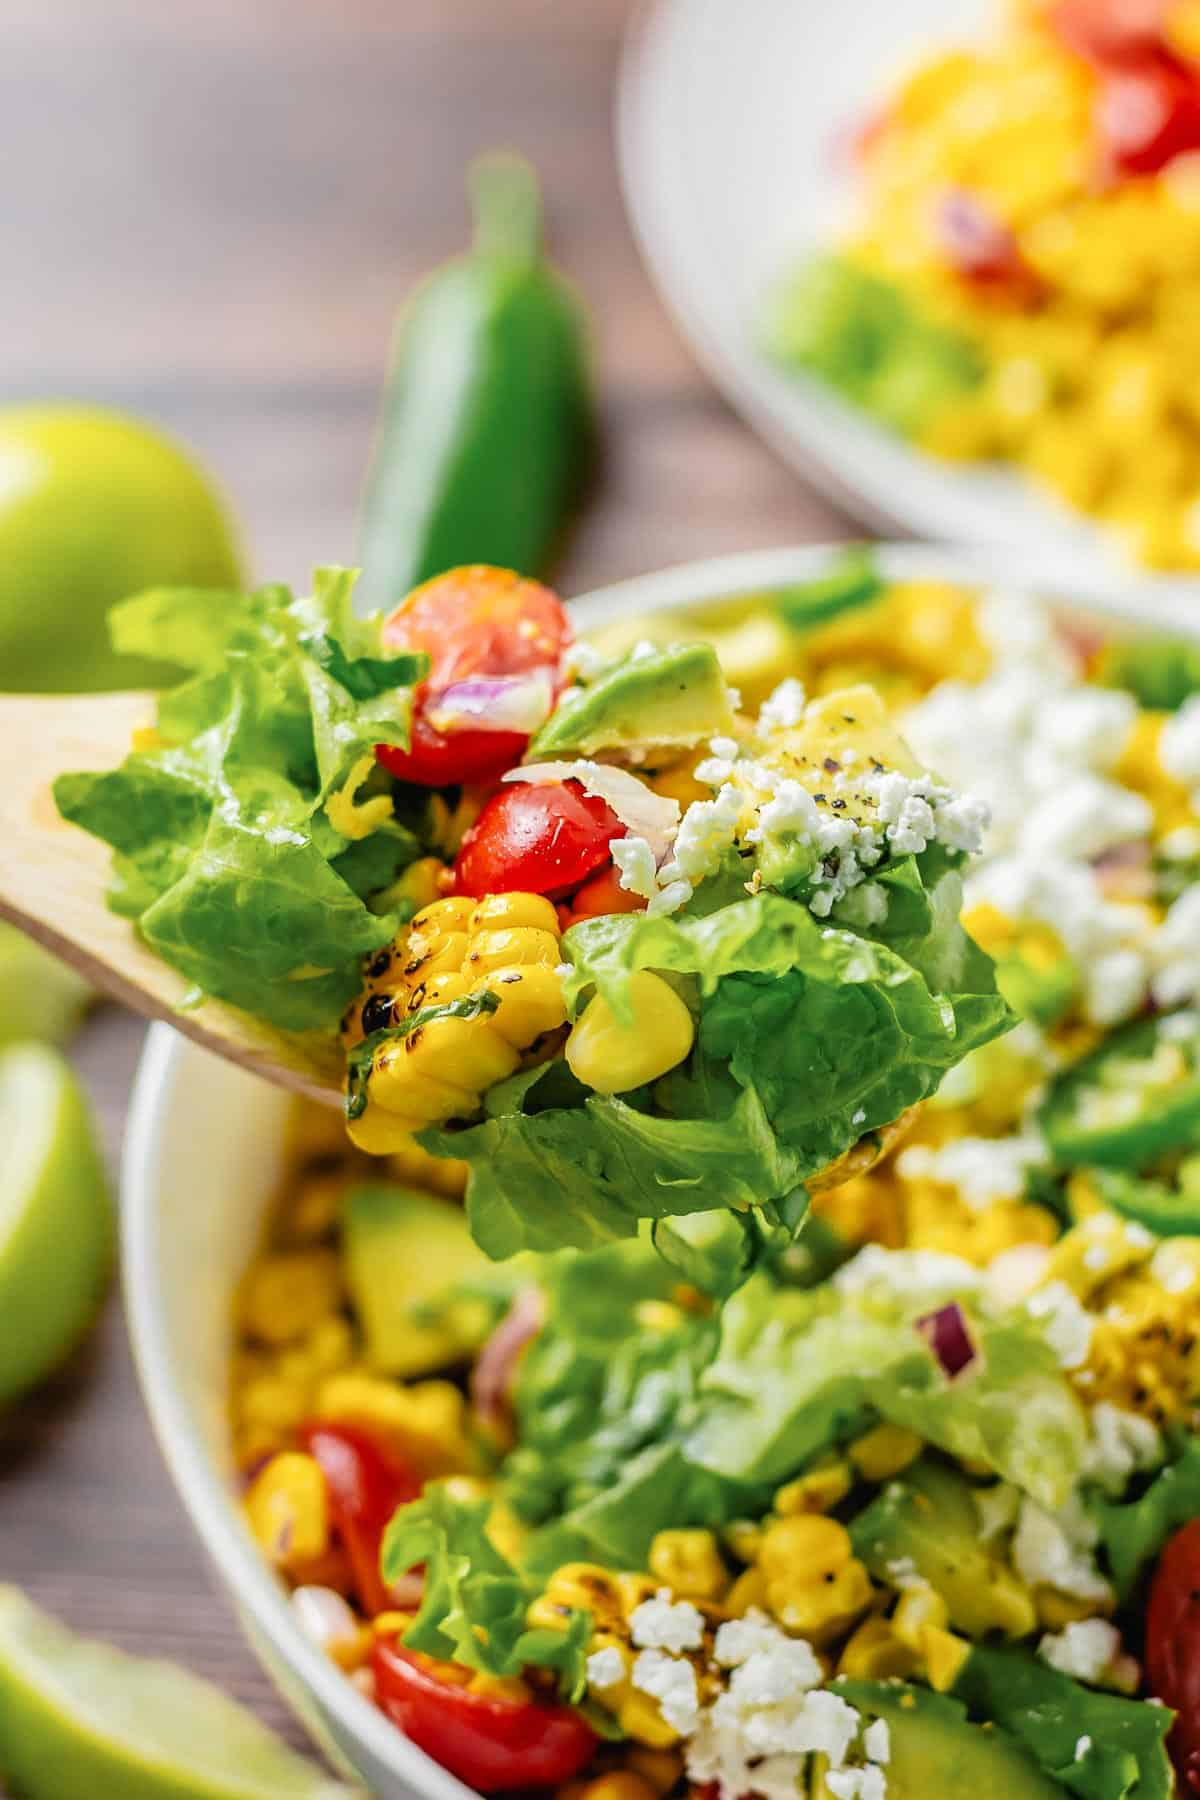 close up shot of wooden spoon with some grilled corn salad with lettuce, avocado, tomatoes, onion in a white bowl on a wooden table